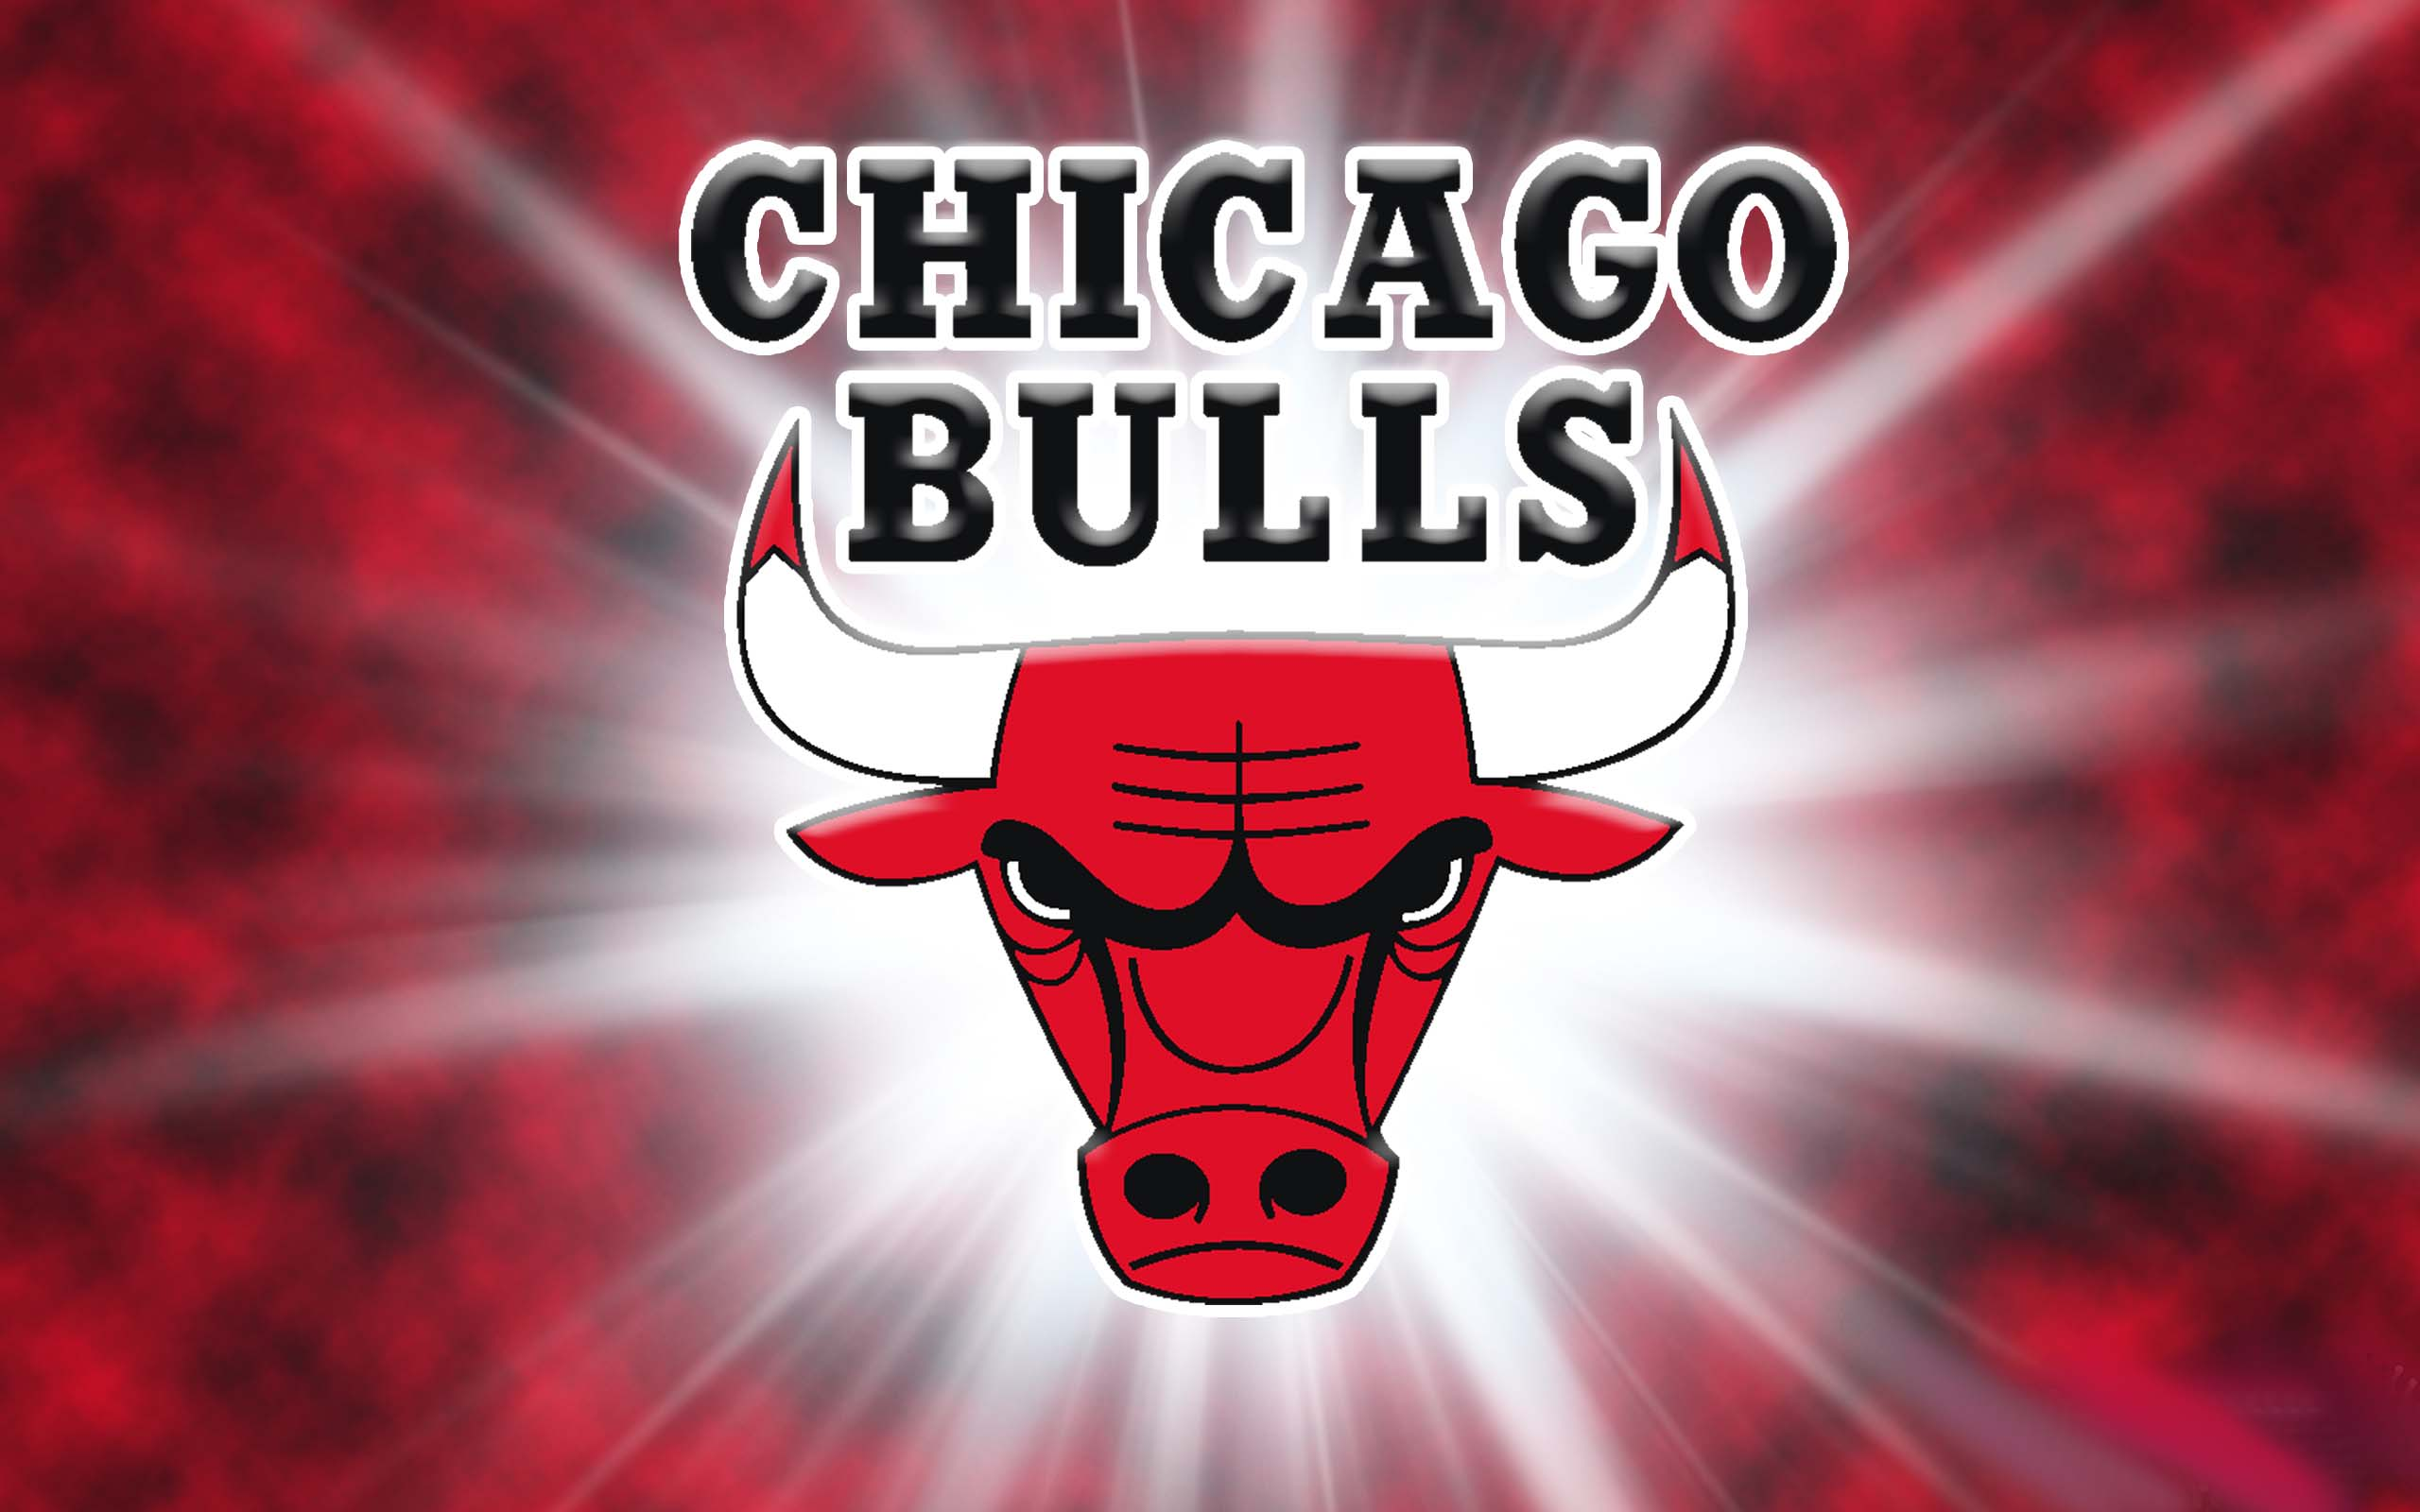 Chicago Bulls Logo Wallpaper HD - WallpaperSafari